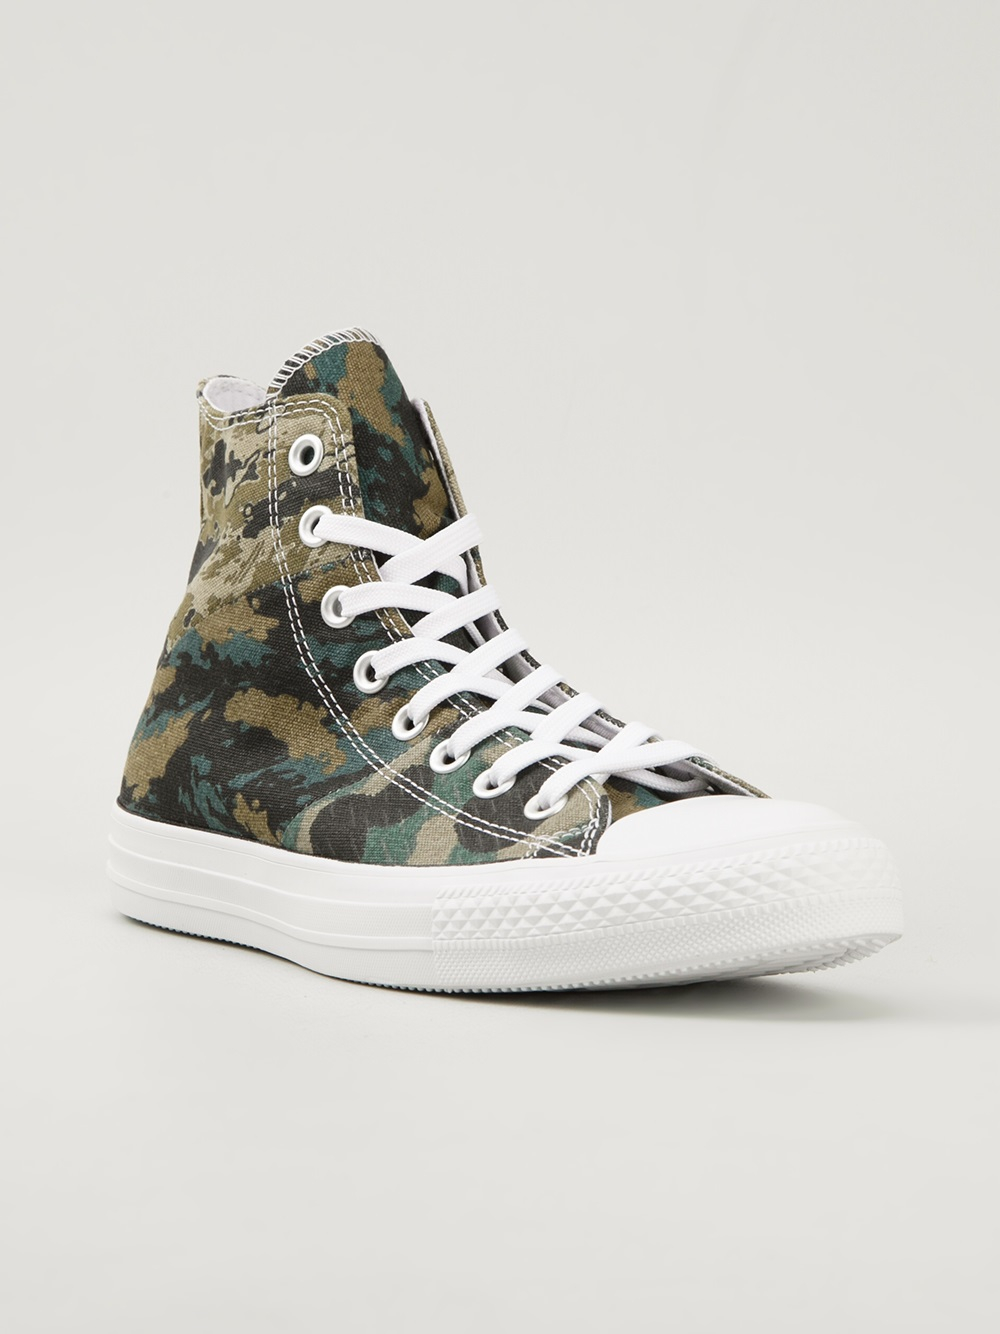 Lyst Converse Camouflage Print Hitop Sneakers In Green For Men